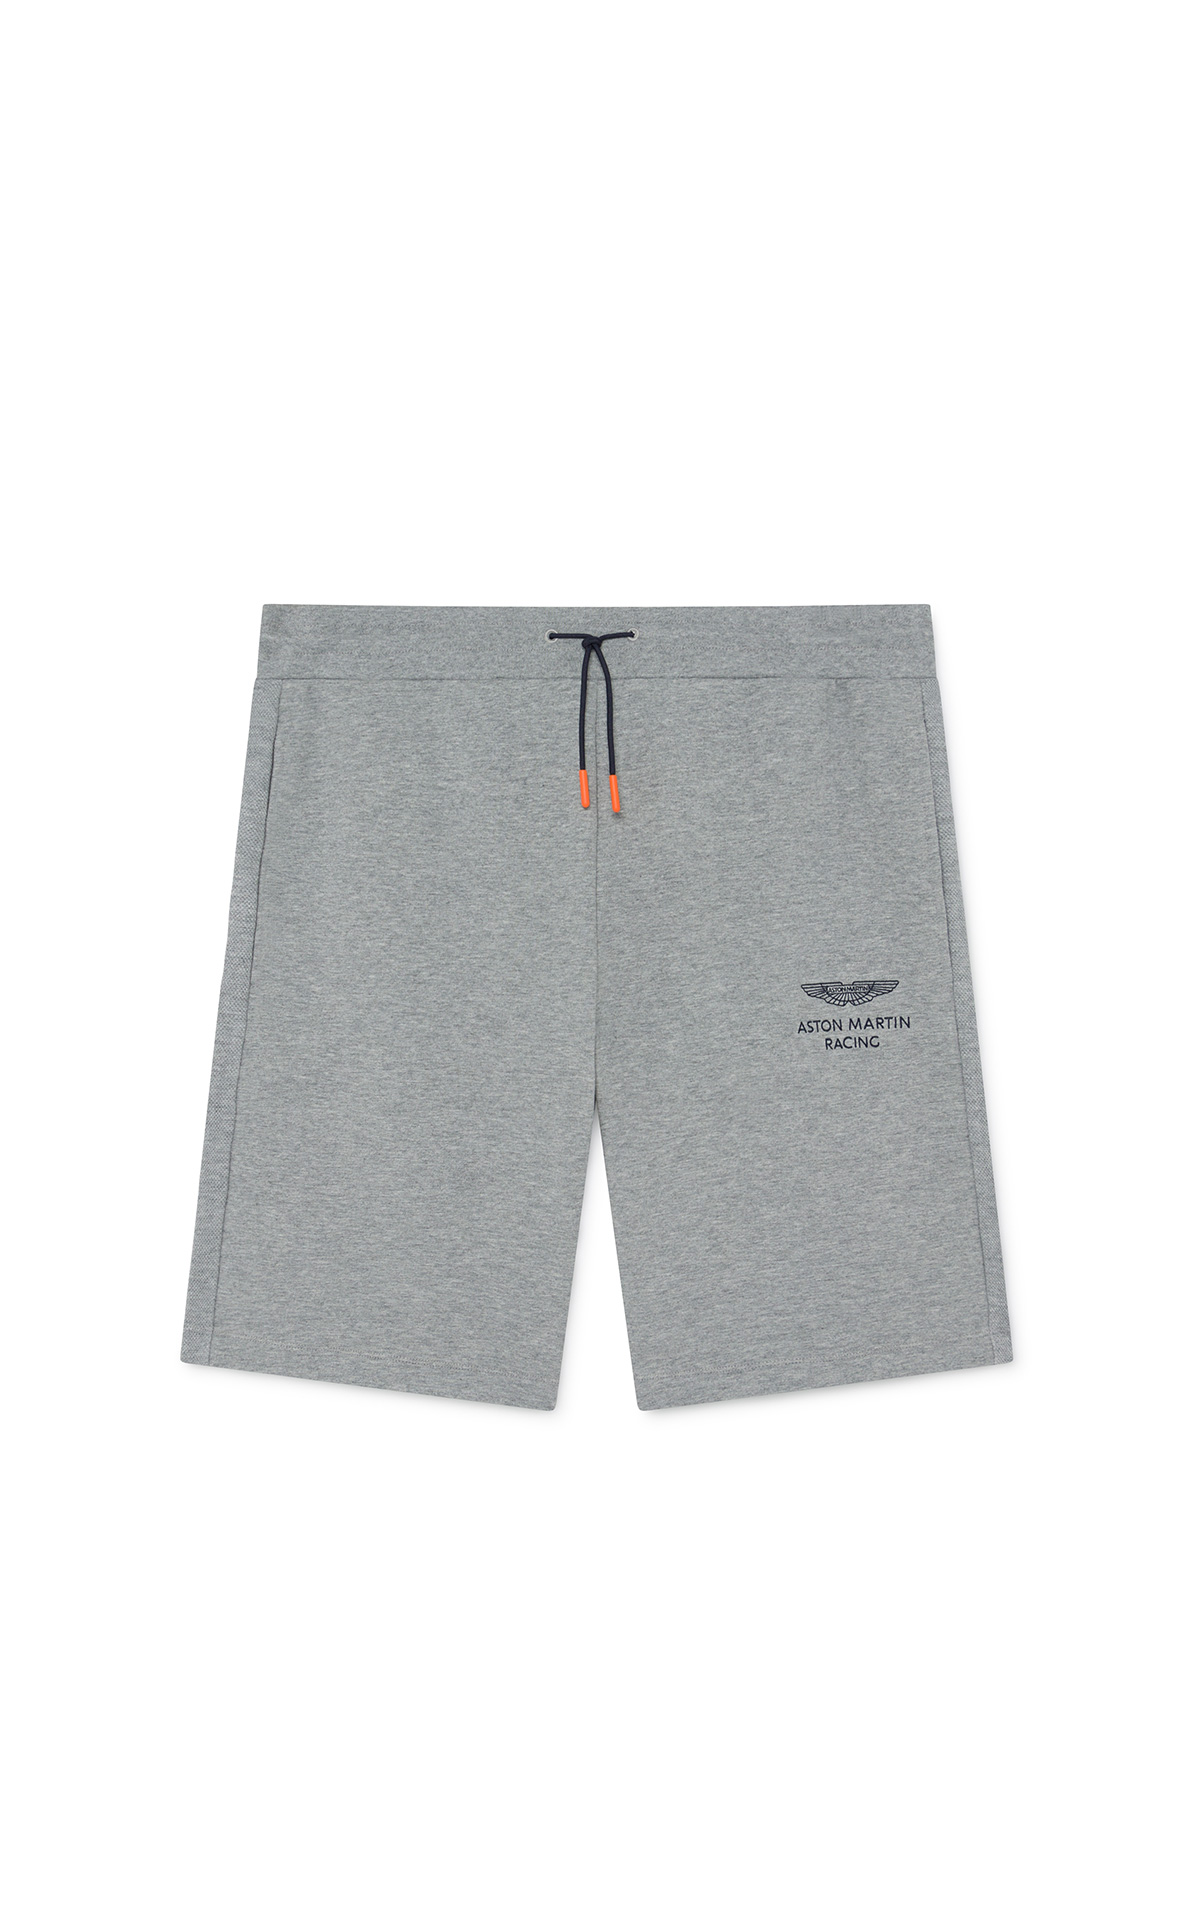 Hackett London shorts at The Bicester Village Shopping Collection